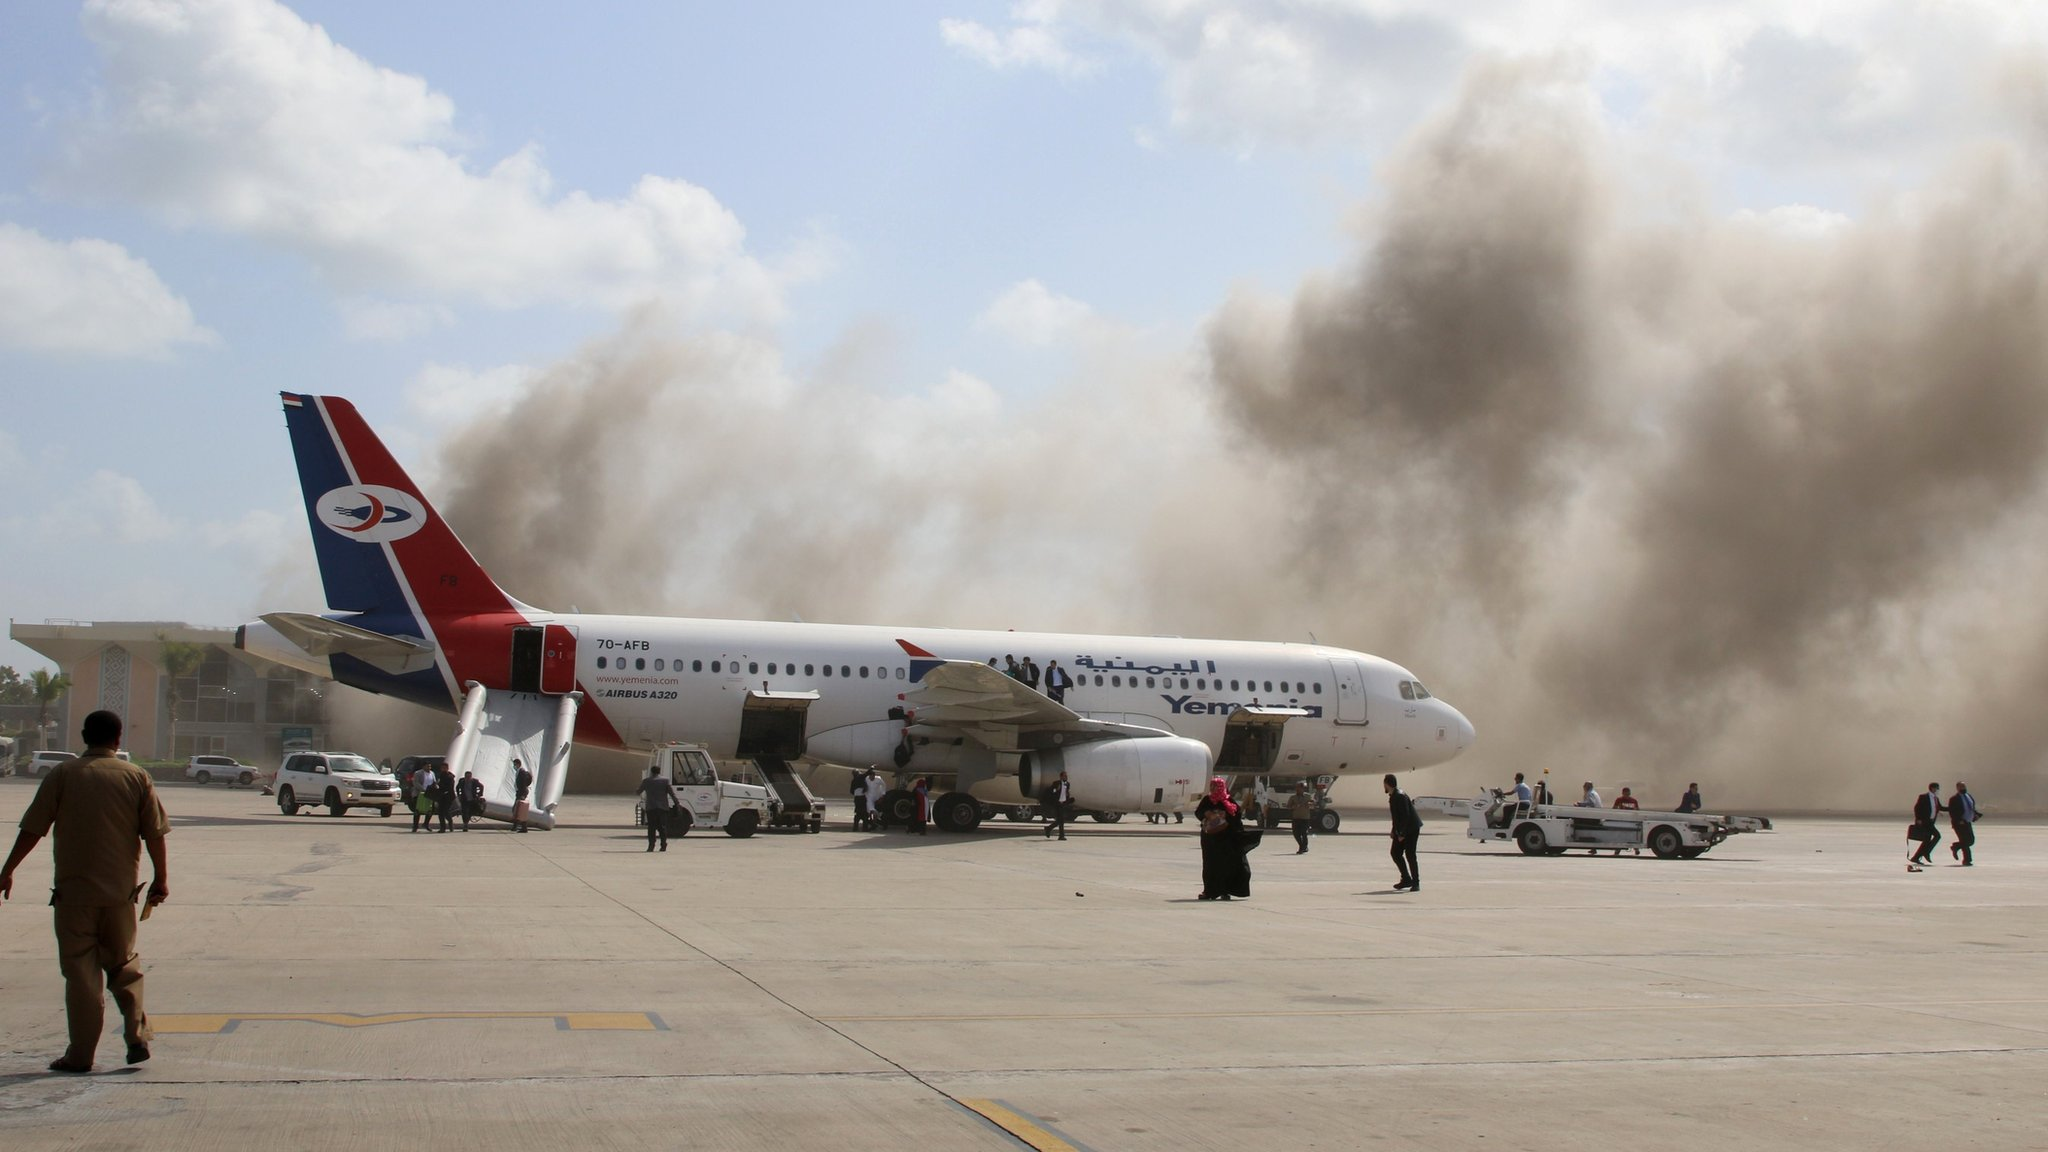 Yemen war: Deadly attack at Aden airport as new government arrives thumbnail